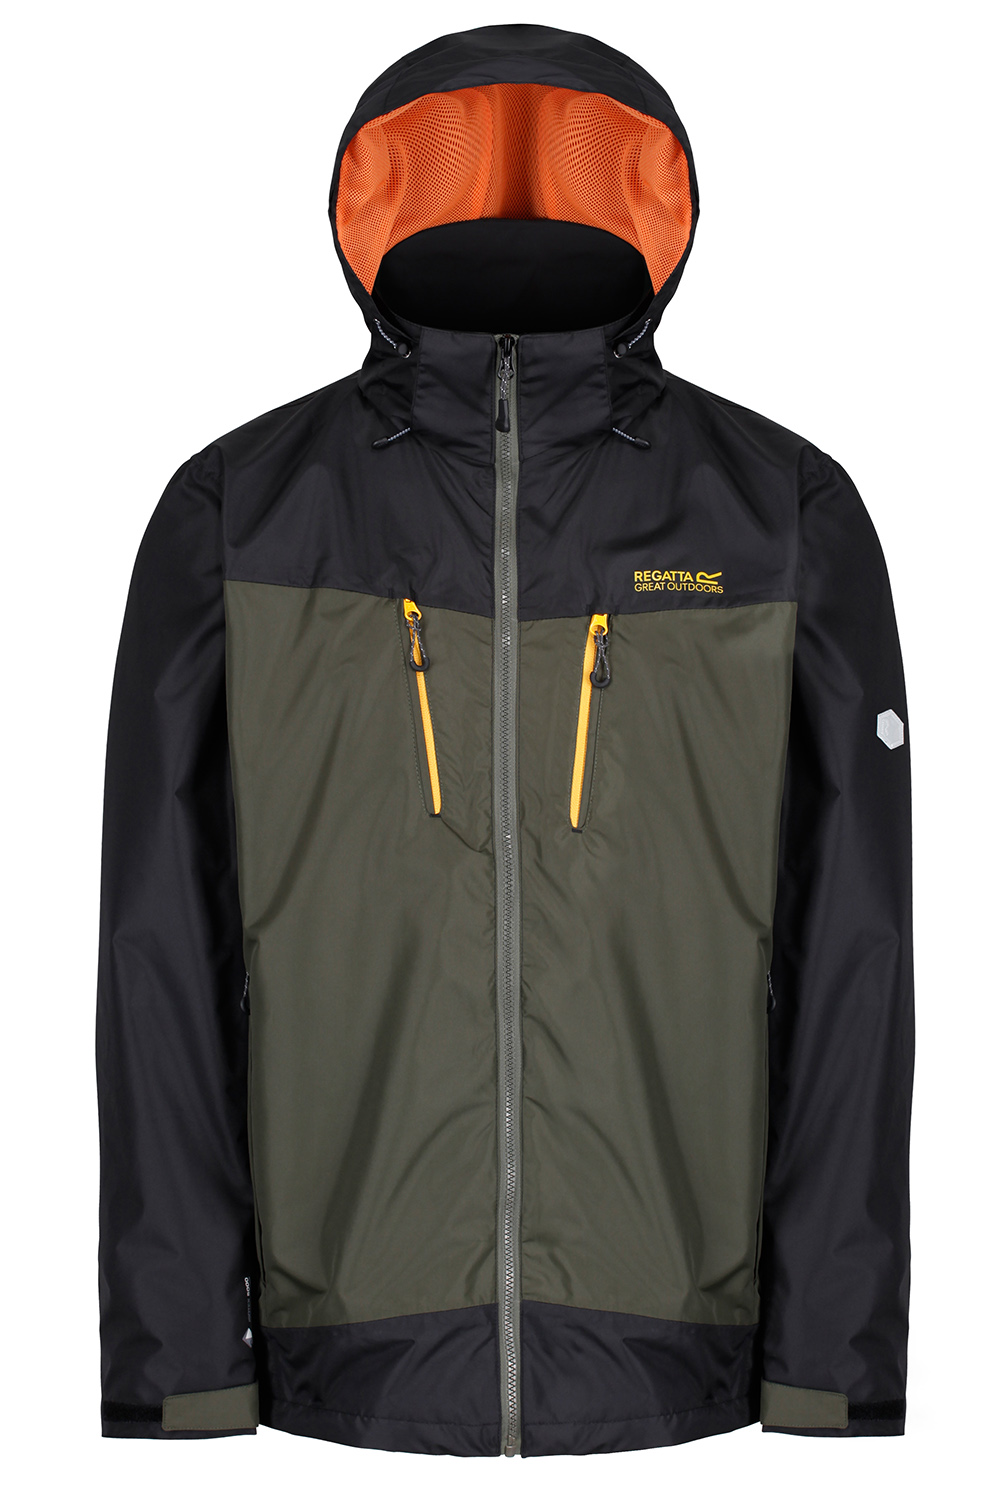 Regatta-Mens-Calderdale-II-Jacket-Waterproof-Breathable-Isotex-5000-Hooded-Coat thumbnail 26